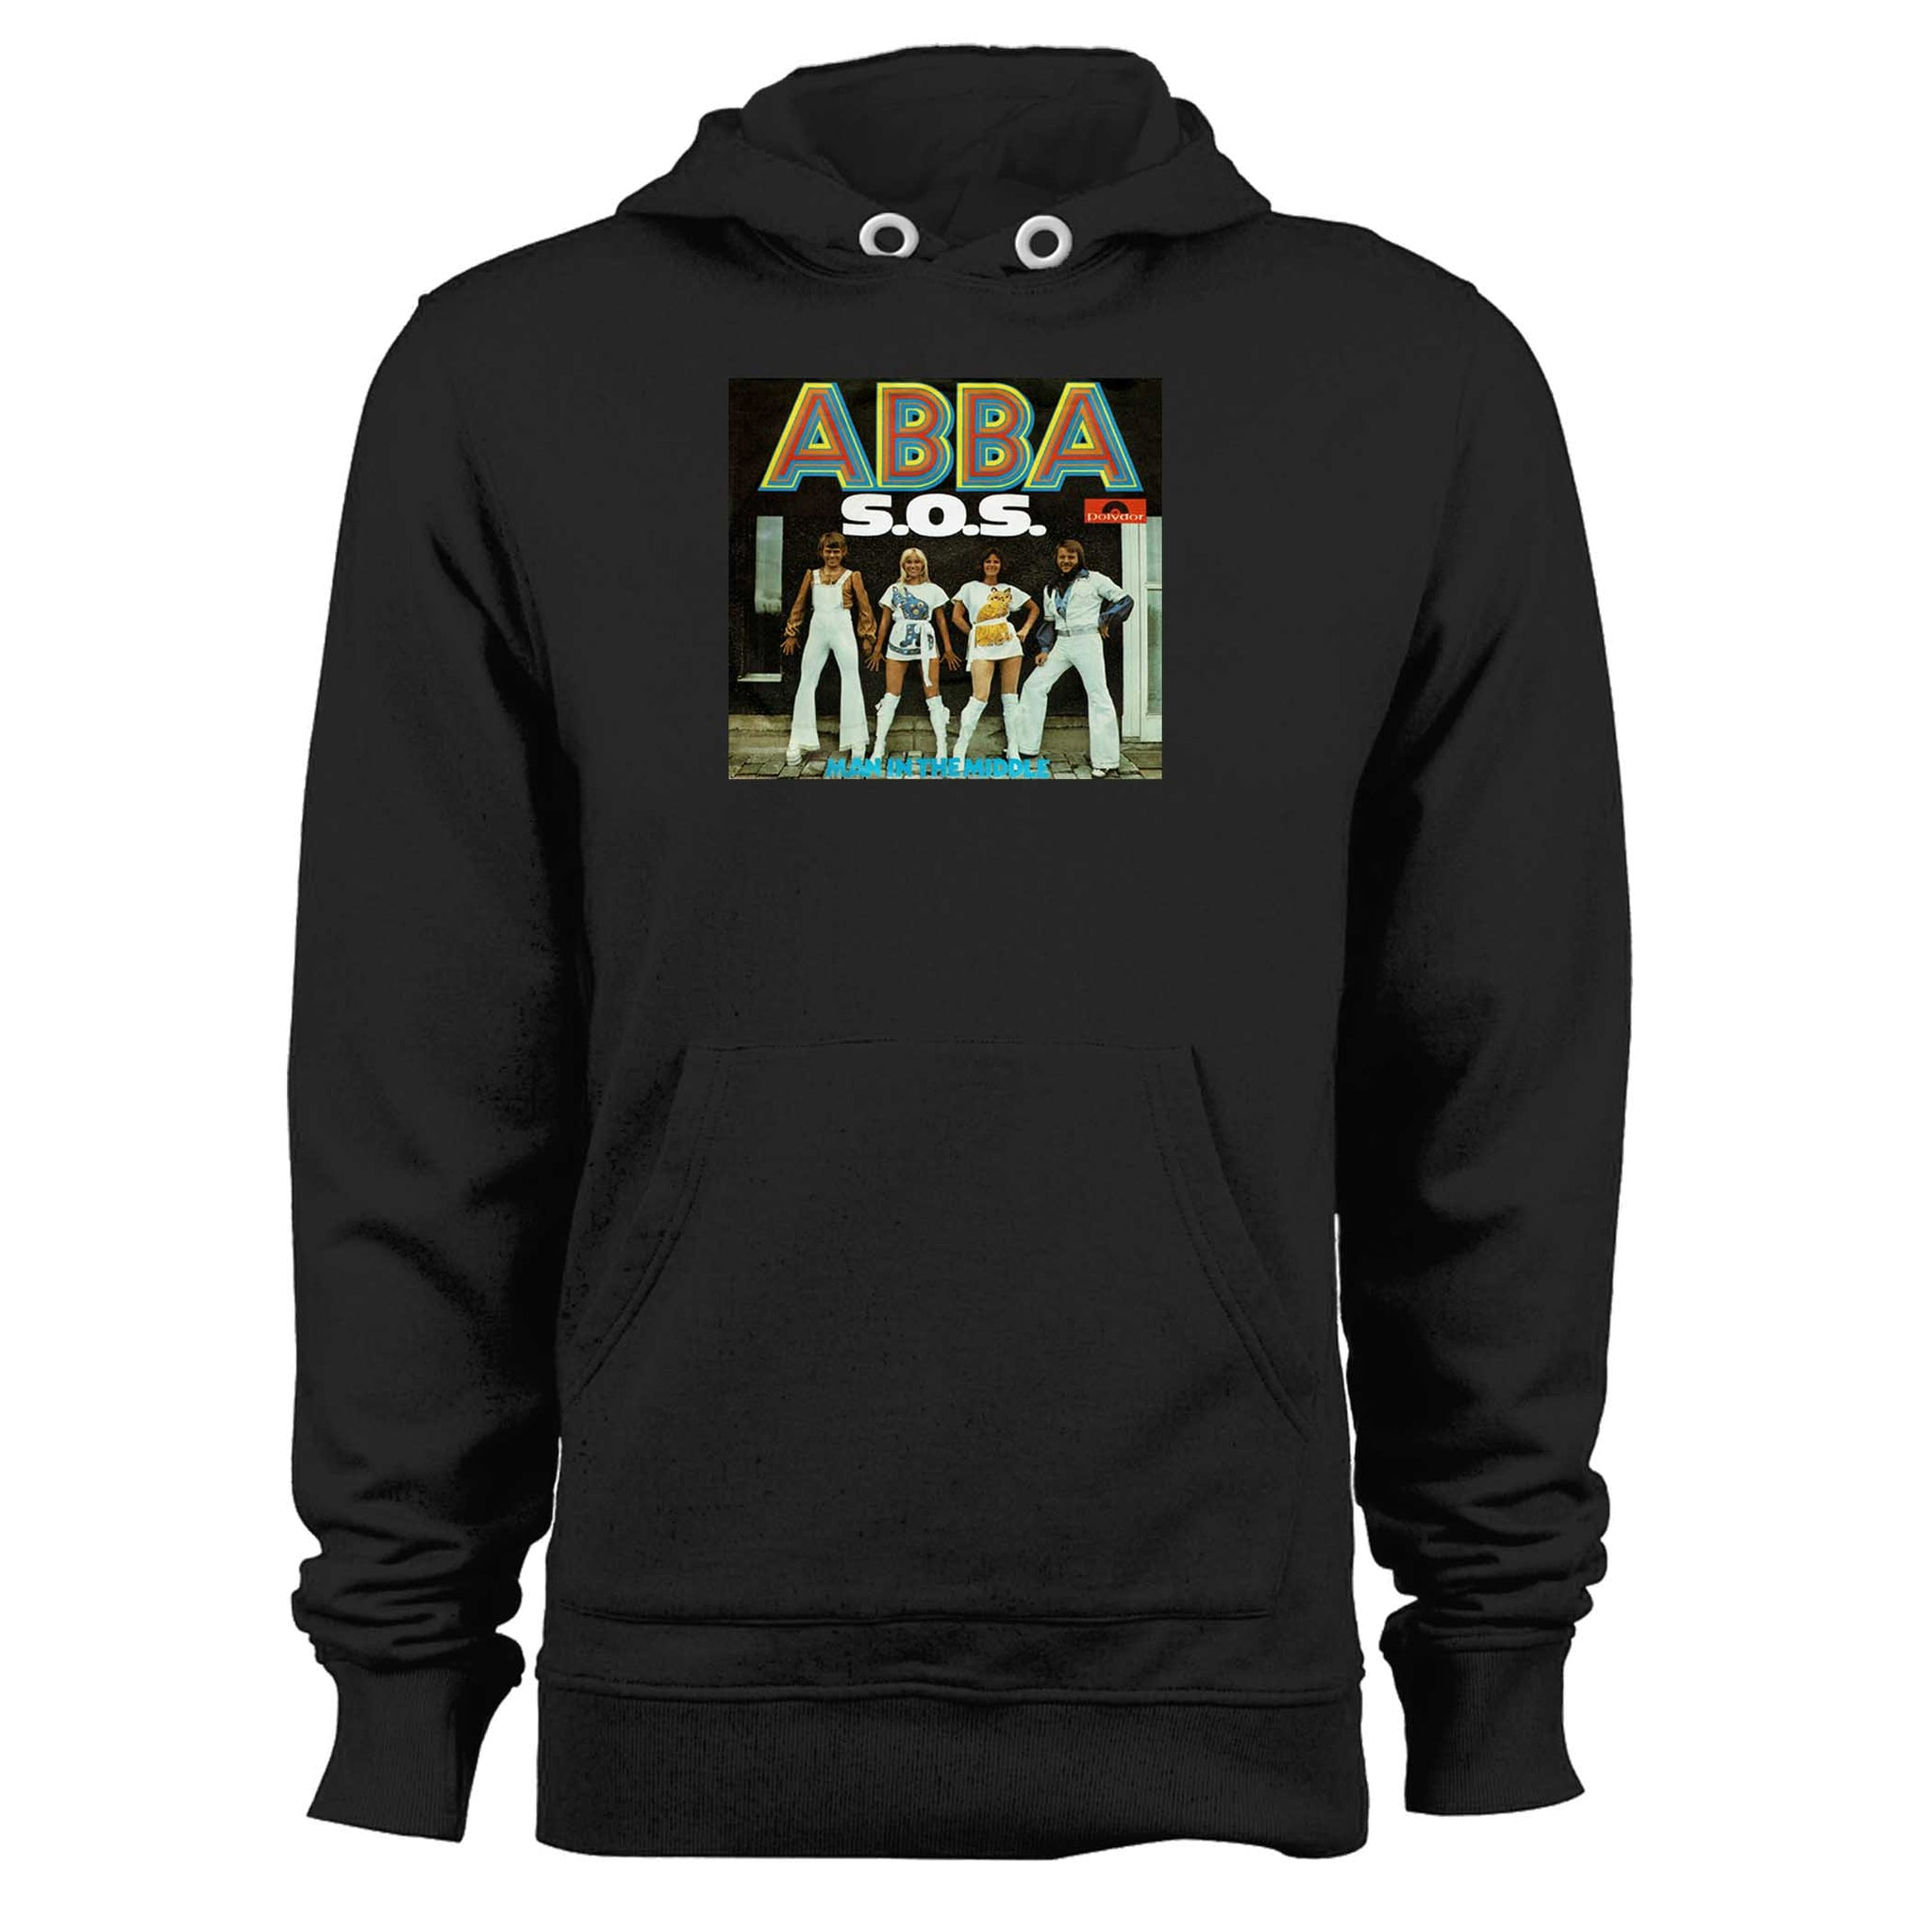 Abba Sos Cover Unisex Hoodie